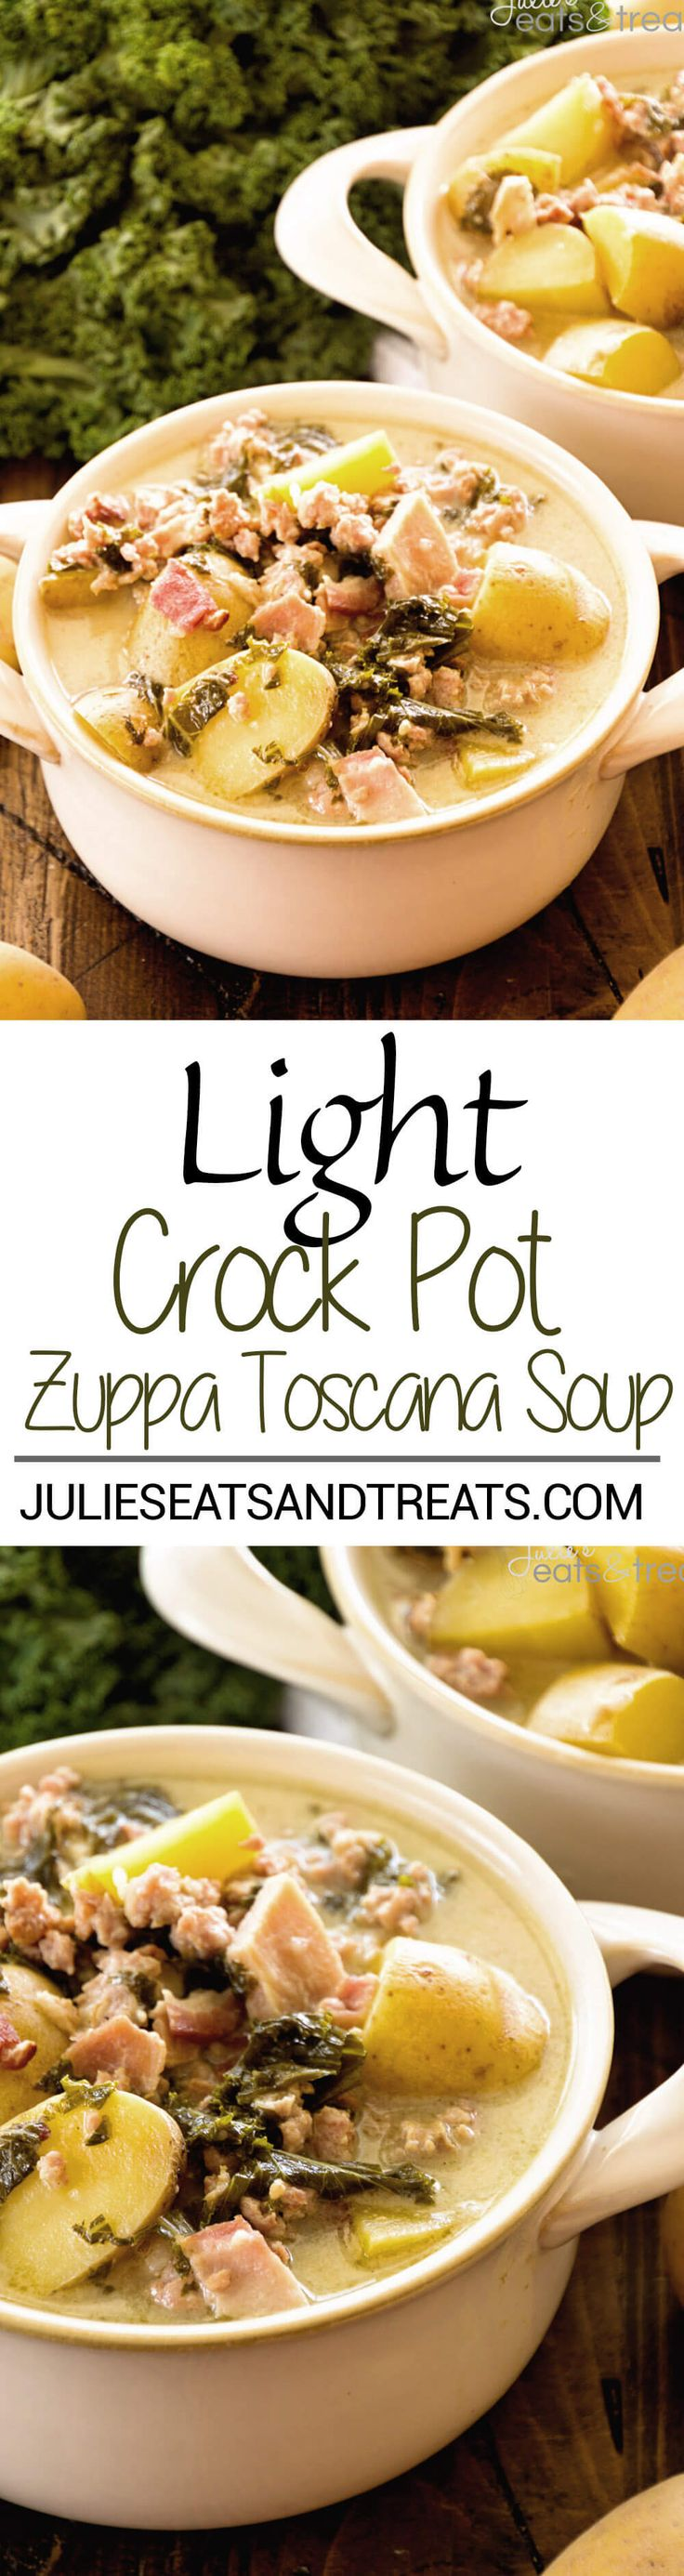 Light Crock Pot Zuppa Toscana Recipe ~ A Delicious Copy Cat Recipe of Olive Garden's Zuppa Toscana But Even Better Because It's Slow Cooked in Your Crock Pot and Lightened Up! Perfect Comfort Food Dinner! ~ http://www.julieseatsandtreats.com